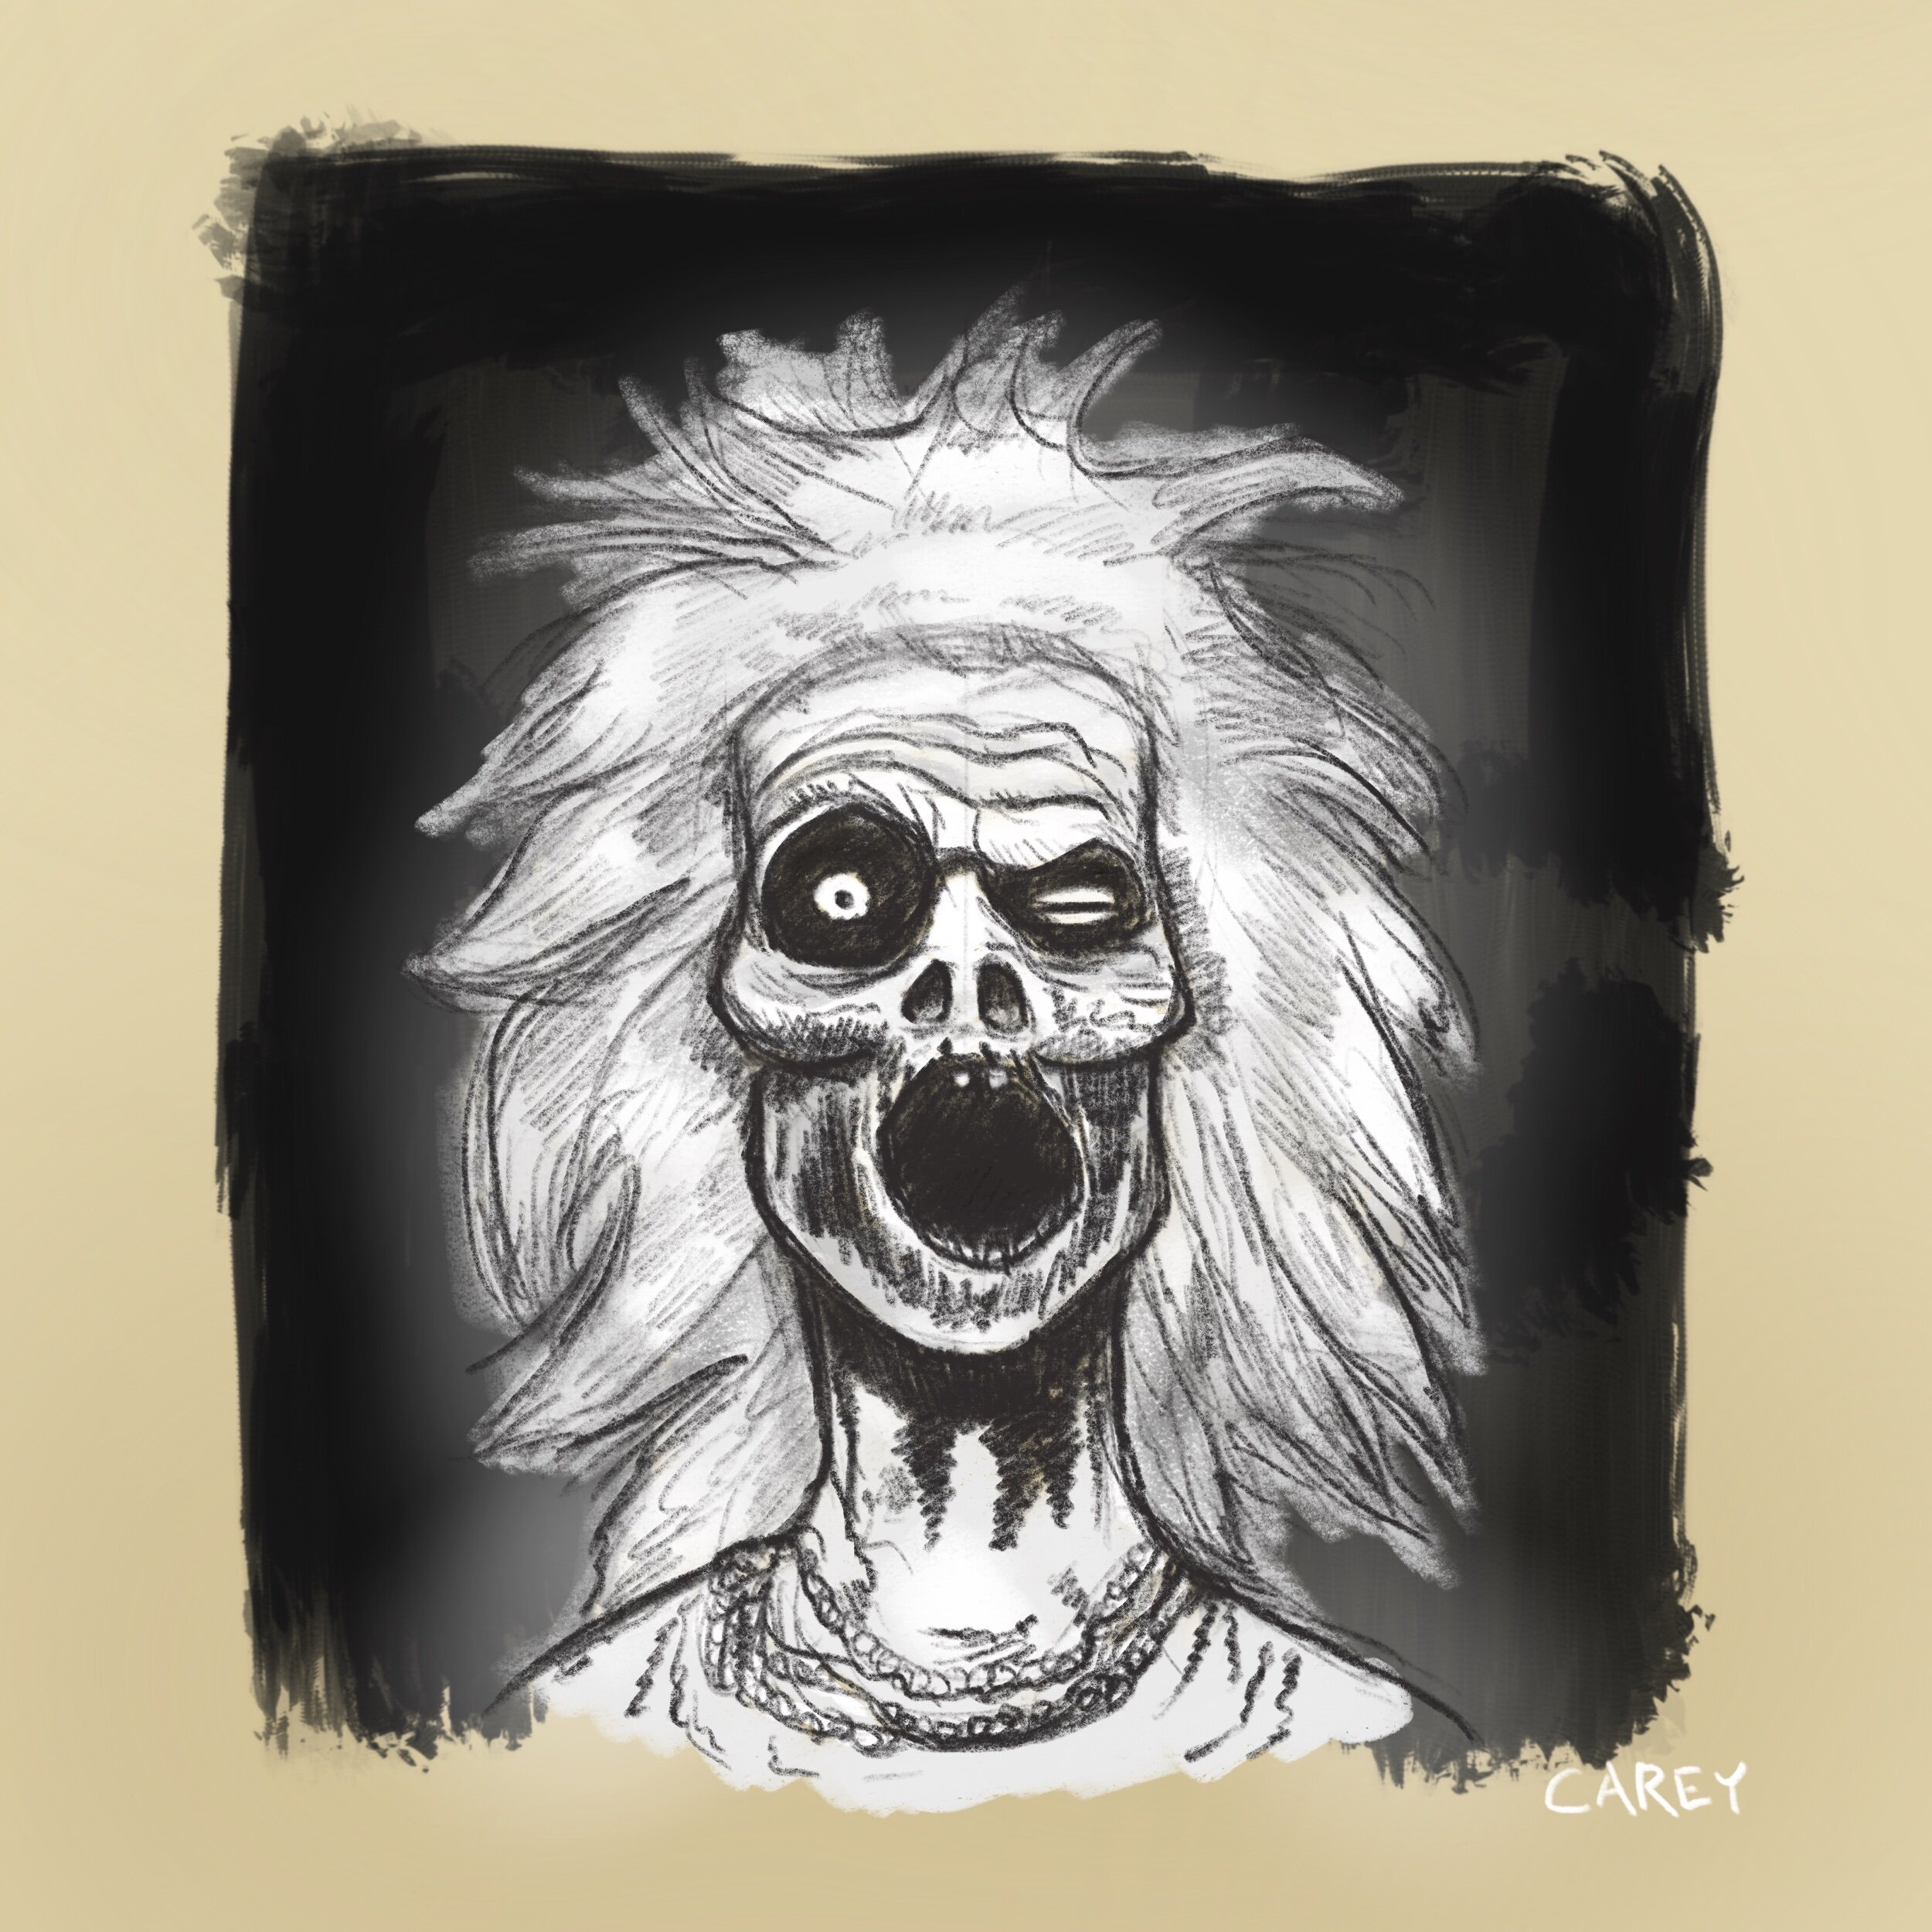 A sketch of one of the ghost portraits